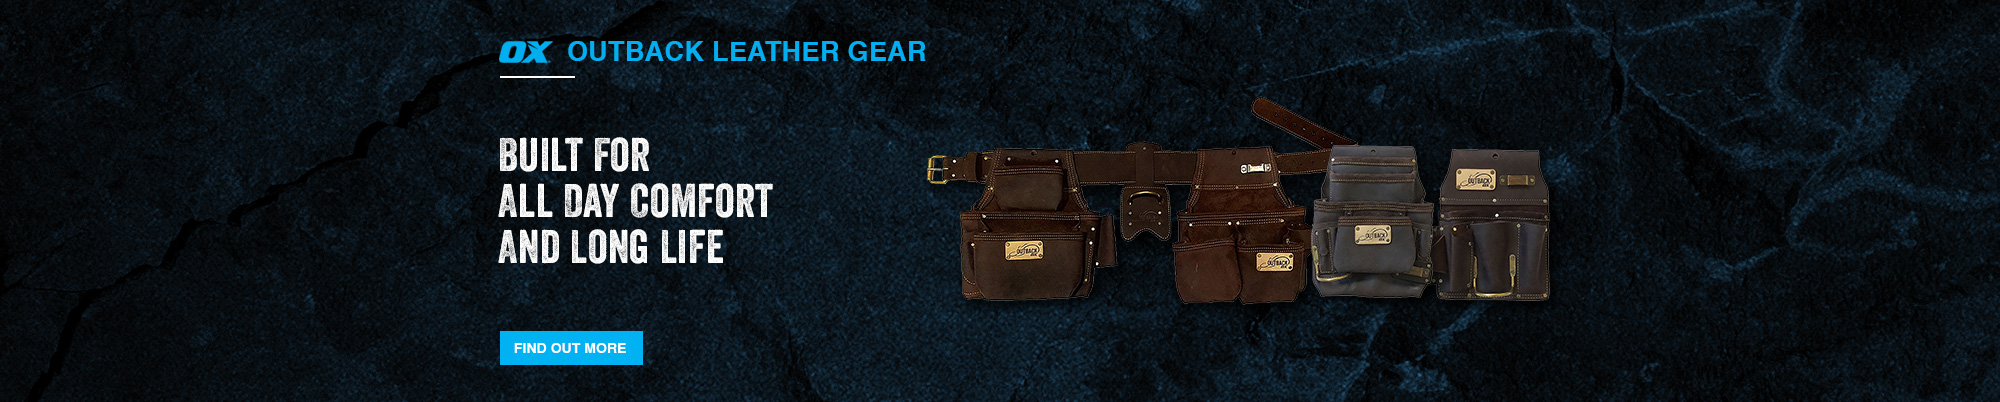 Outback Leather Gear